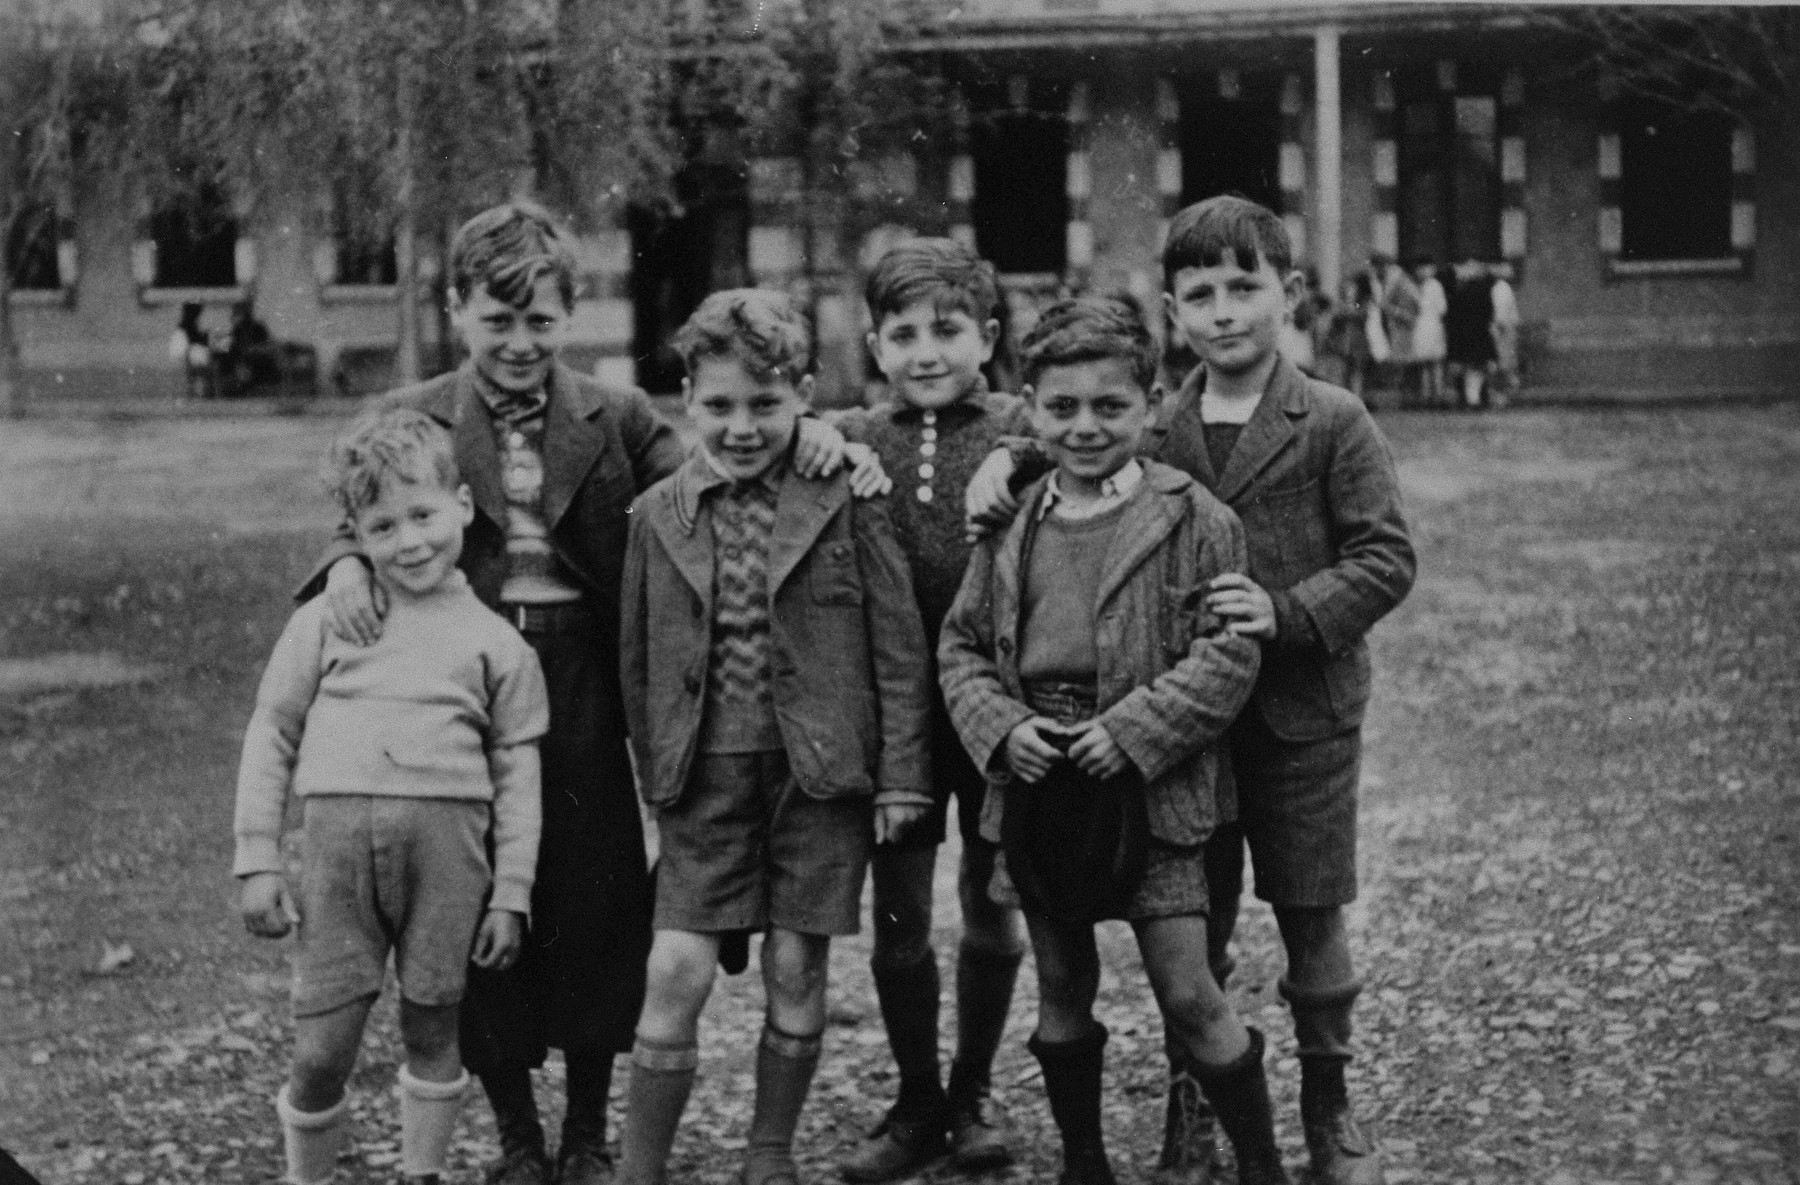 "Group portrait of six German-Jewish refugee boys living at the OSE children's home, ""Maison des Pupilles de la Nation,"" in Aspet, France.    Pictured from left to right are:  Ernst Weilheimer, Richard Weilheimer, Rolf Hess, Hugo Schiller, Hjalmar Maurer and Kurt Walker.  These boys were brought to Aspet from French transit camps with the assistance of the American Friends Service Committee (AFSC) and the Oeuvre de secours aux enfants (OSE).  The AFSC later secured their passage to the United States."